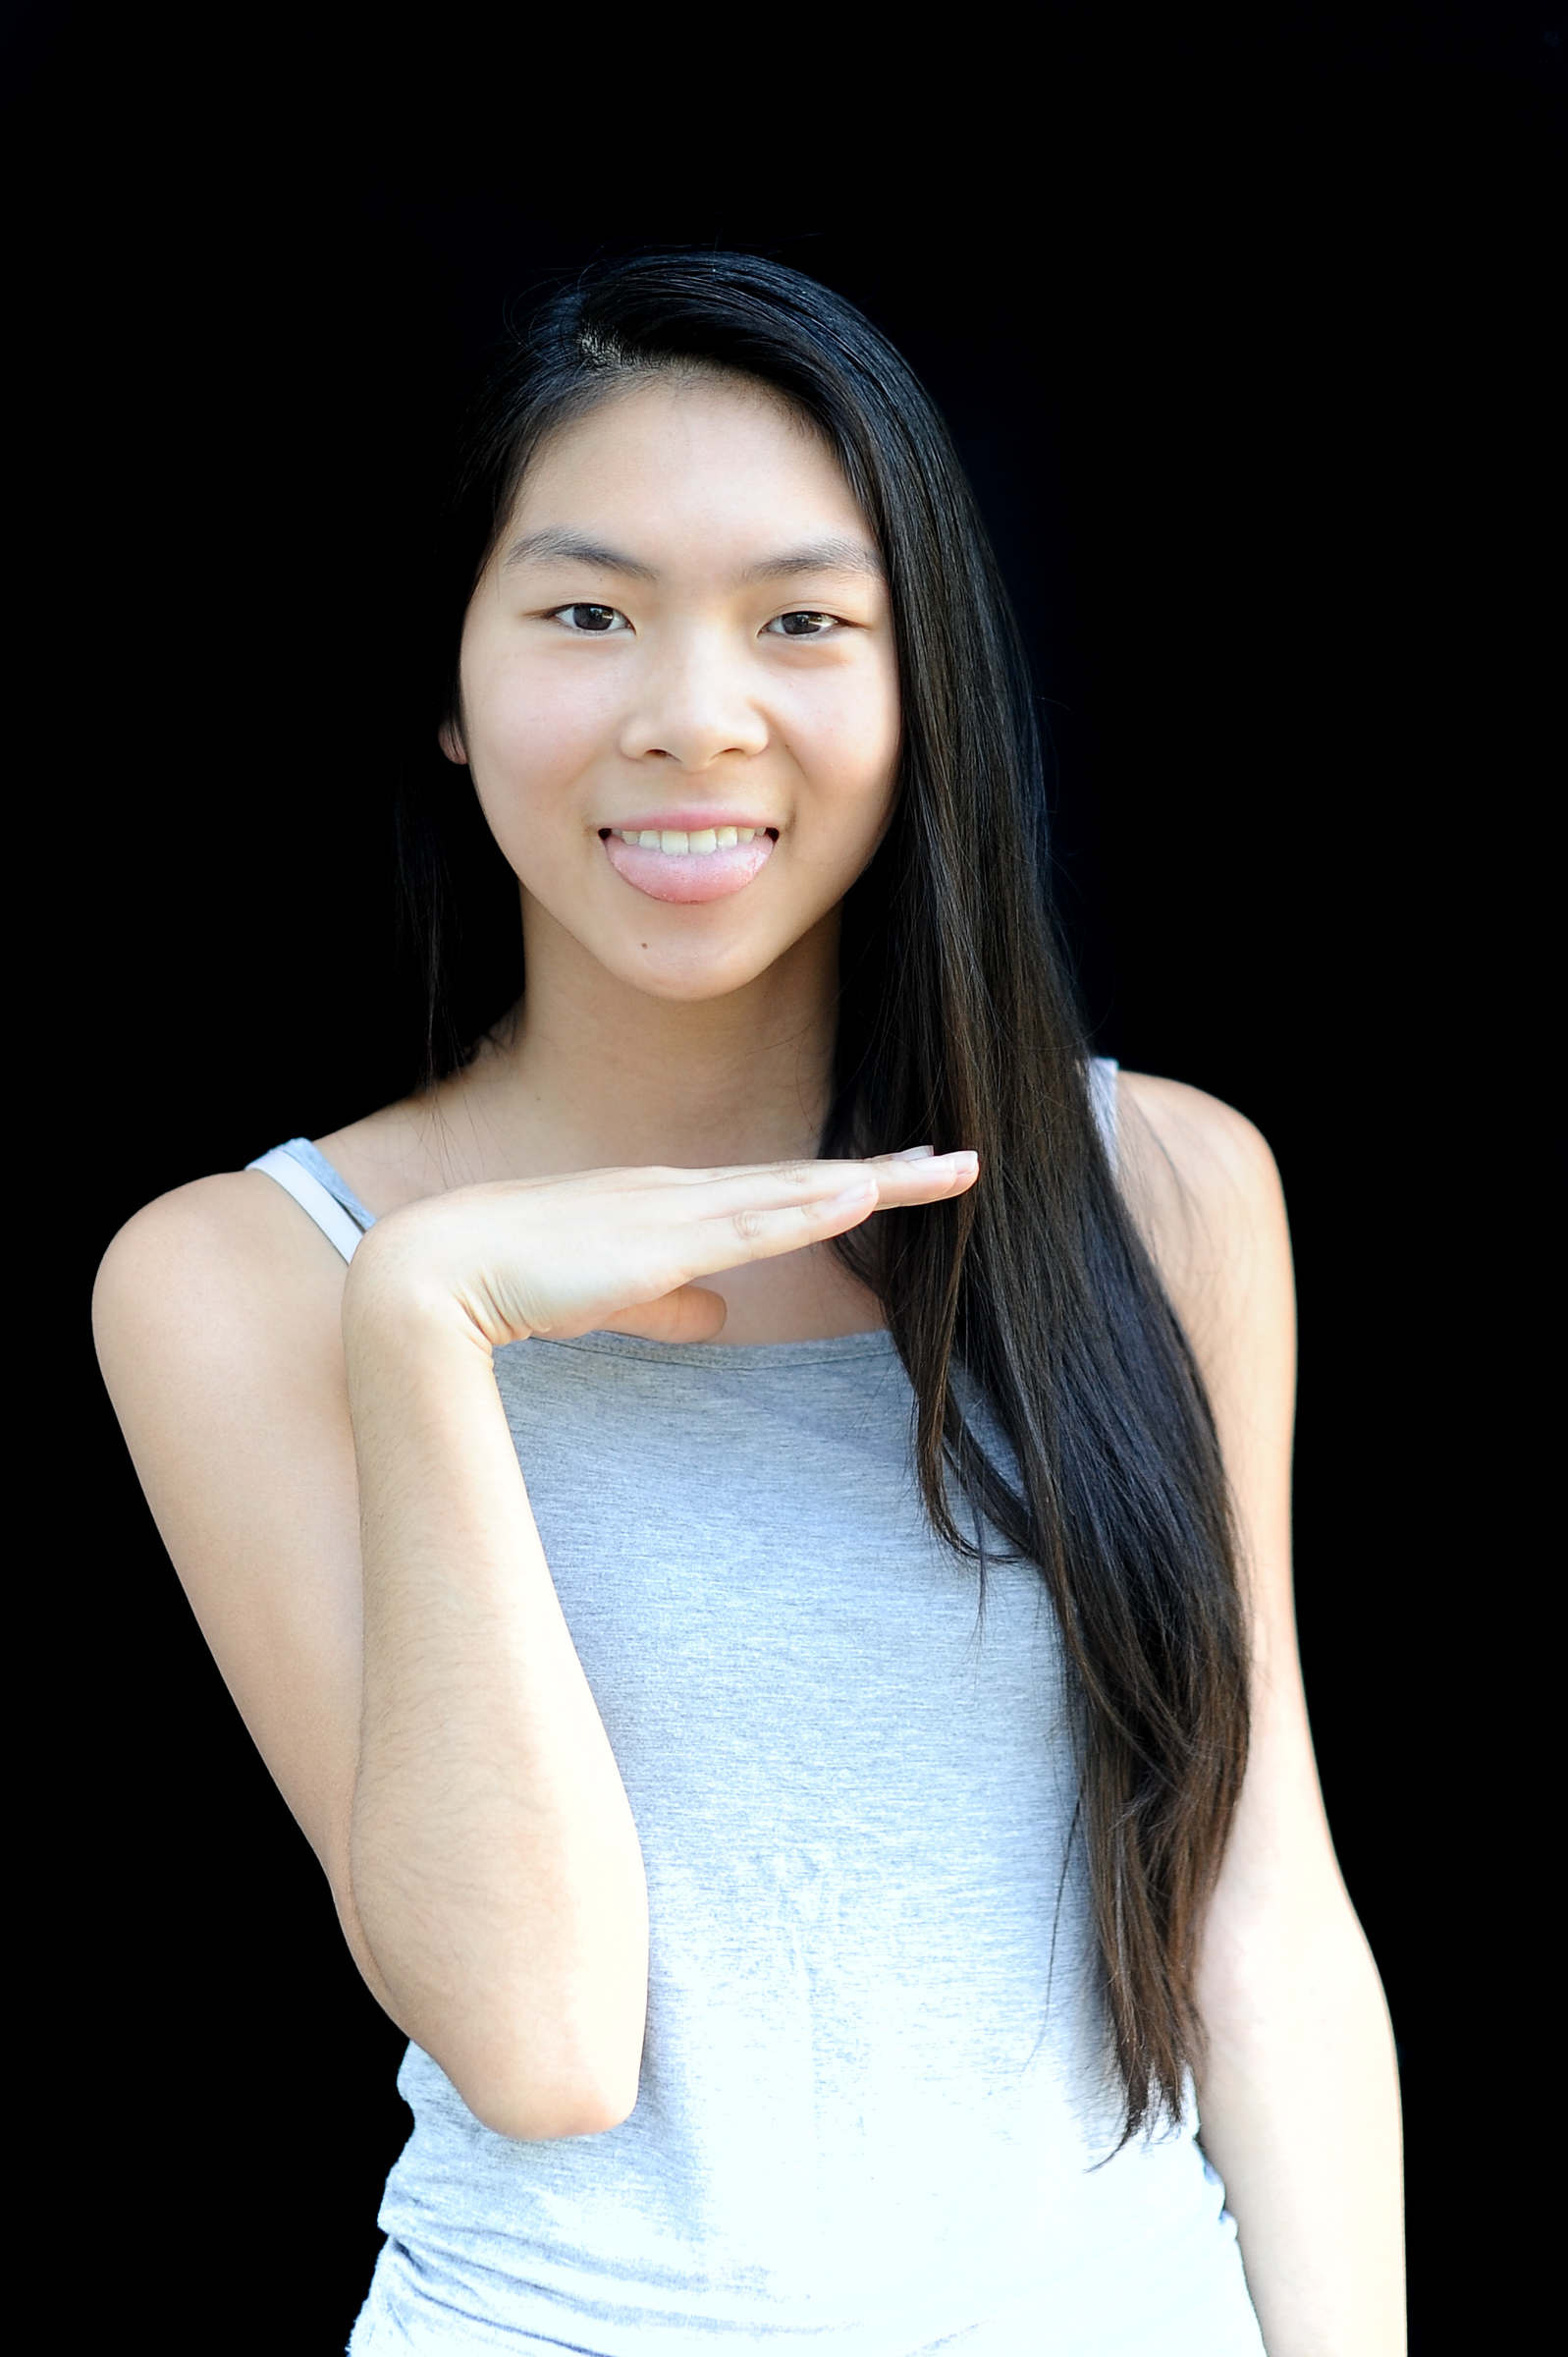 Name: Carol Hung